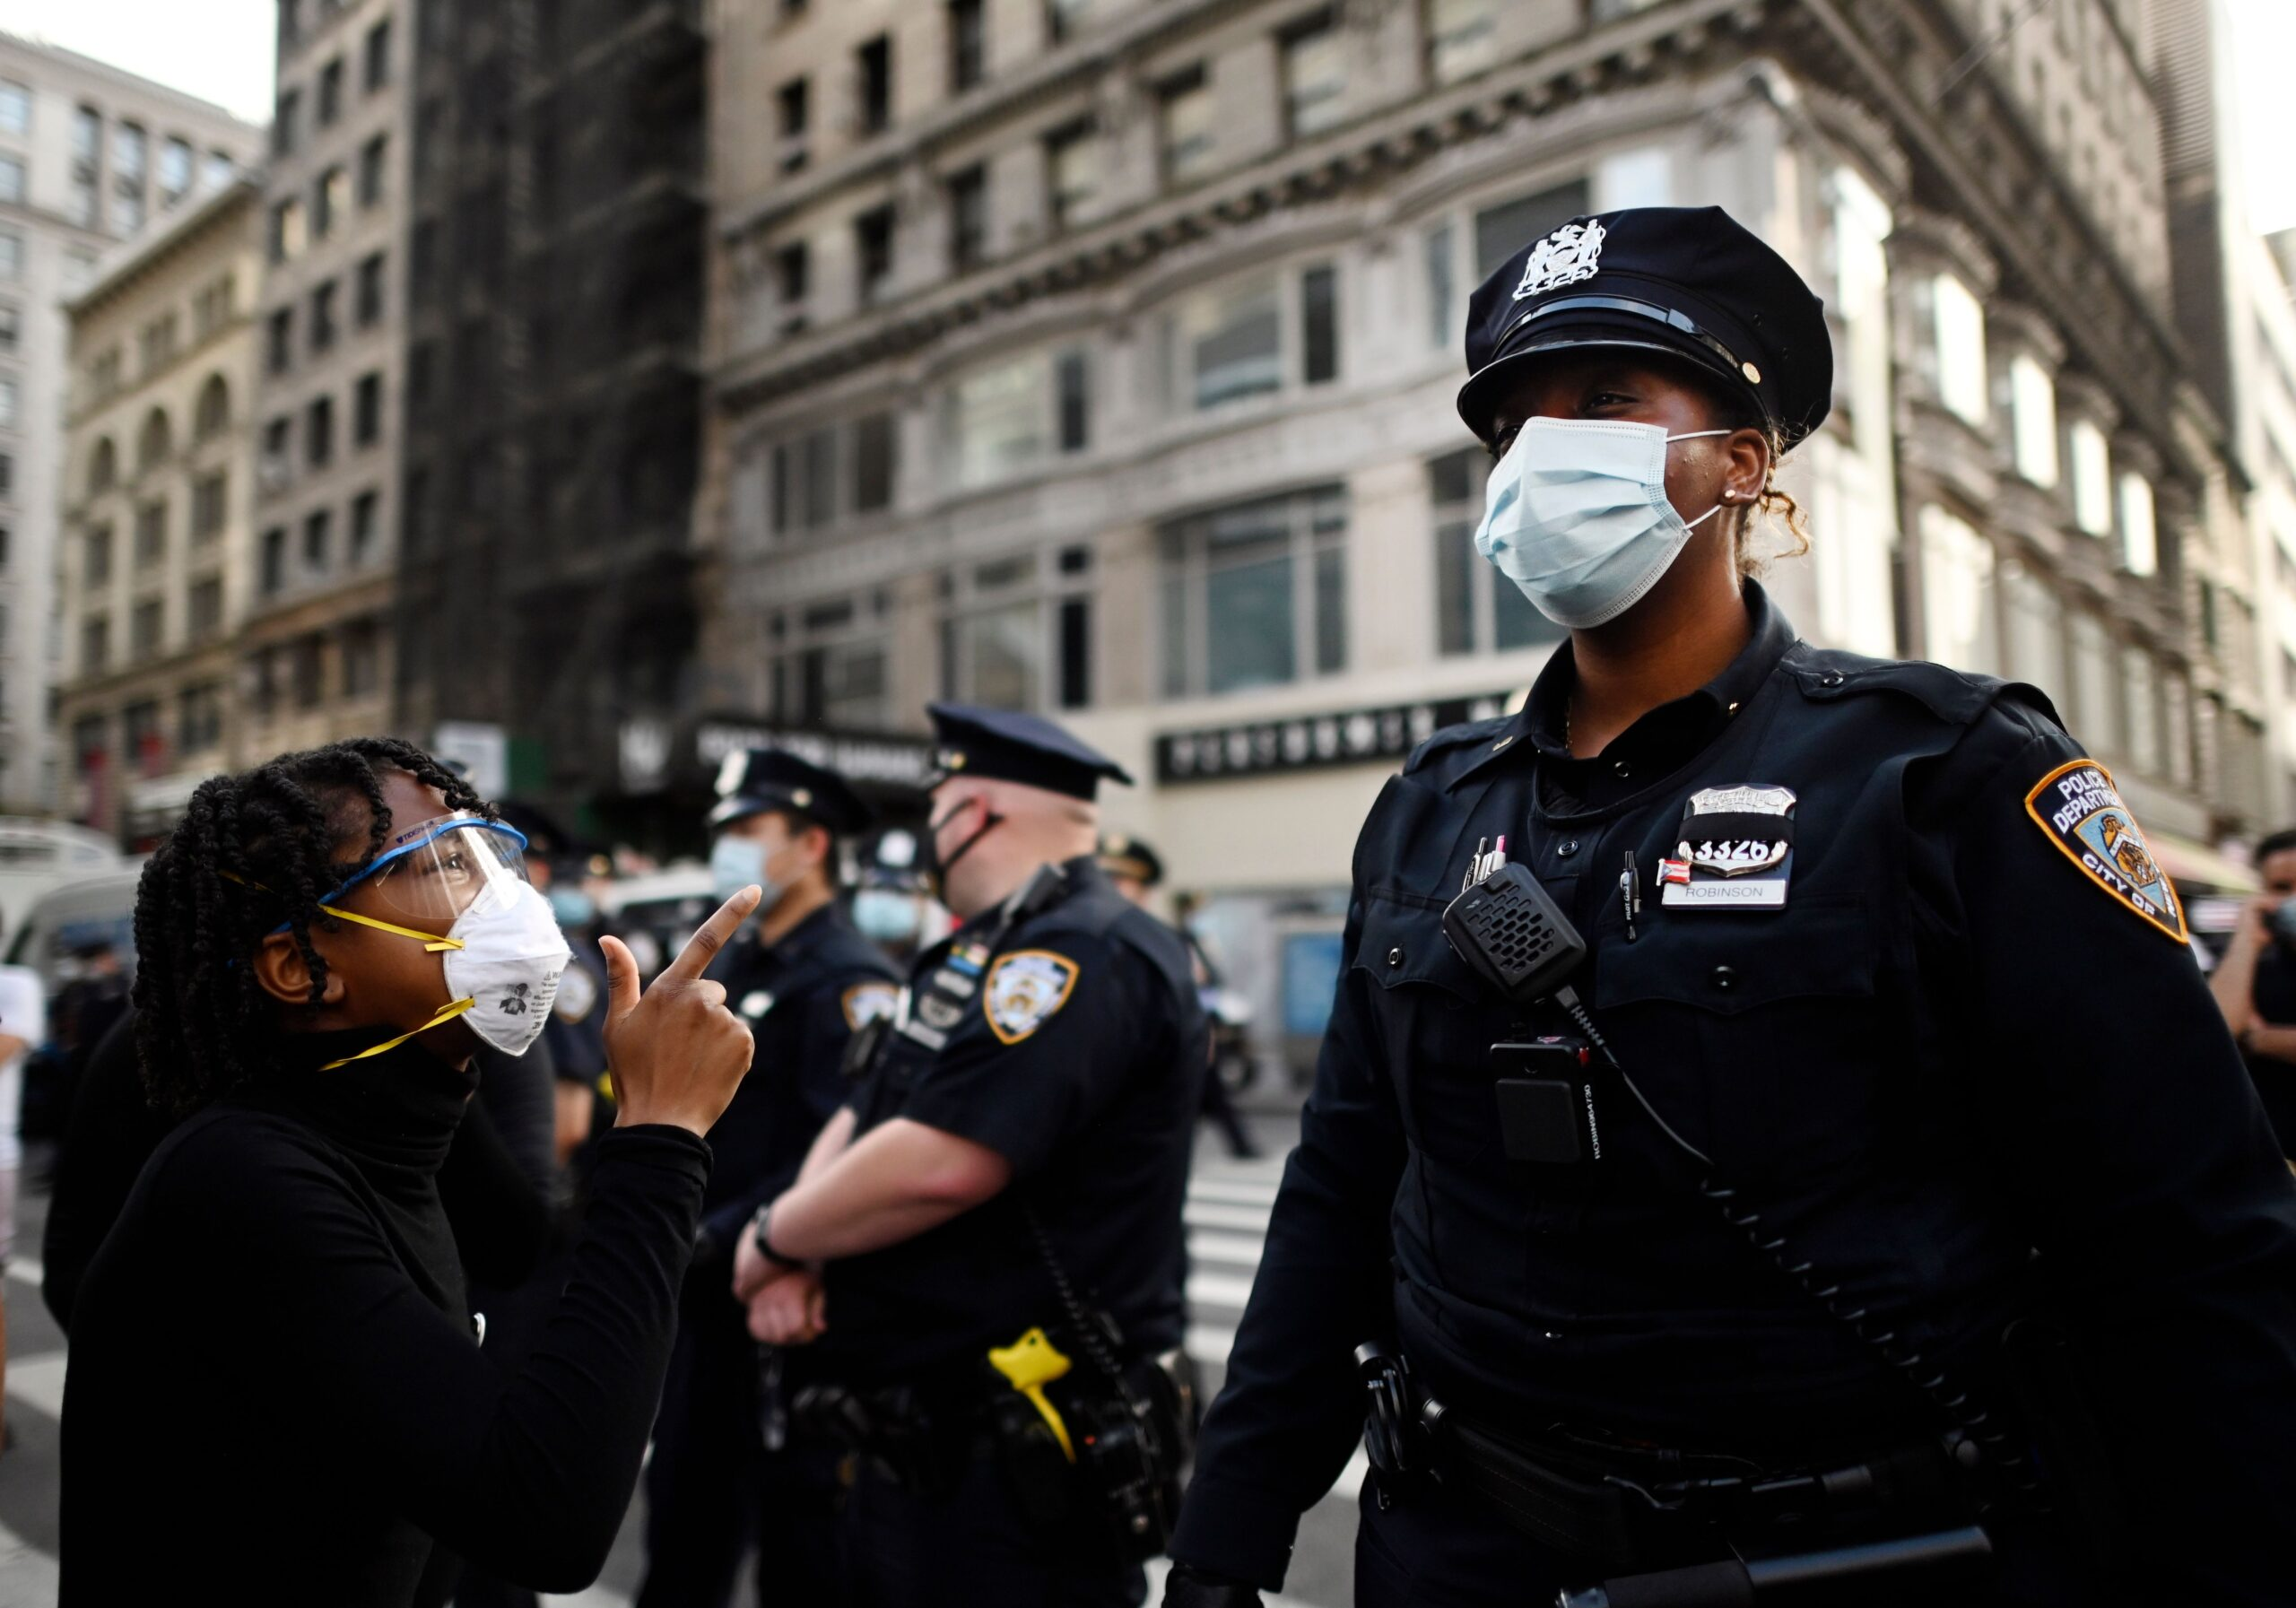 USA: Daunte Wright's Death Again Shows Need to Address Failures of Policing